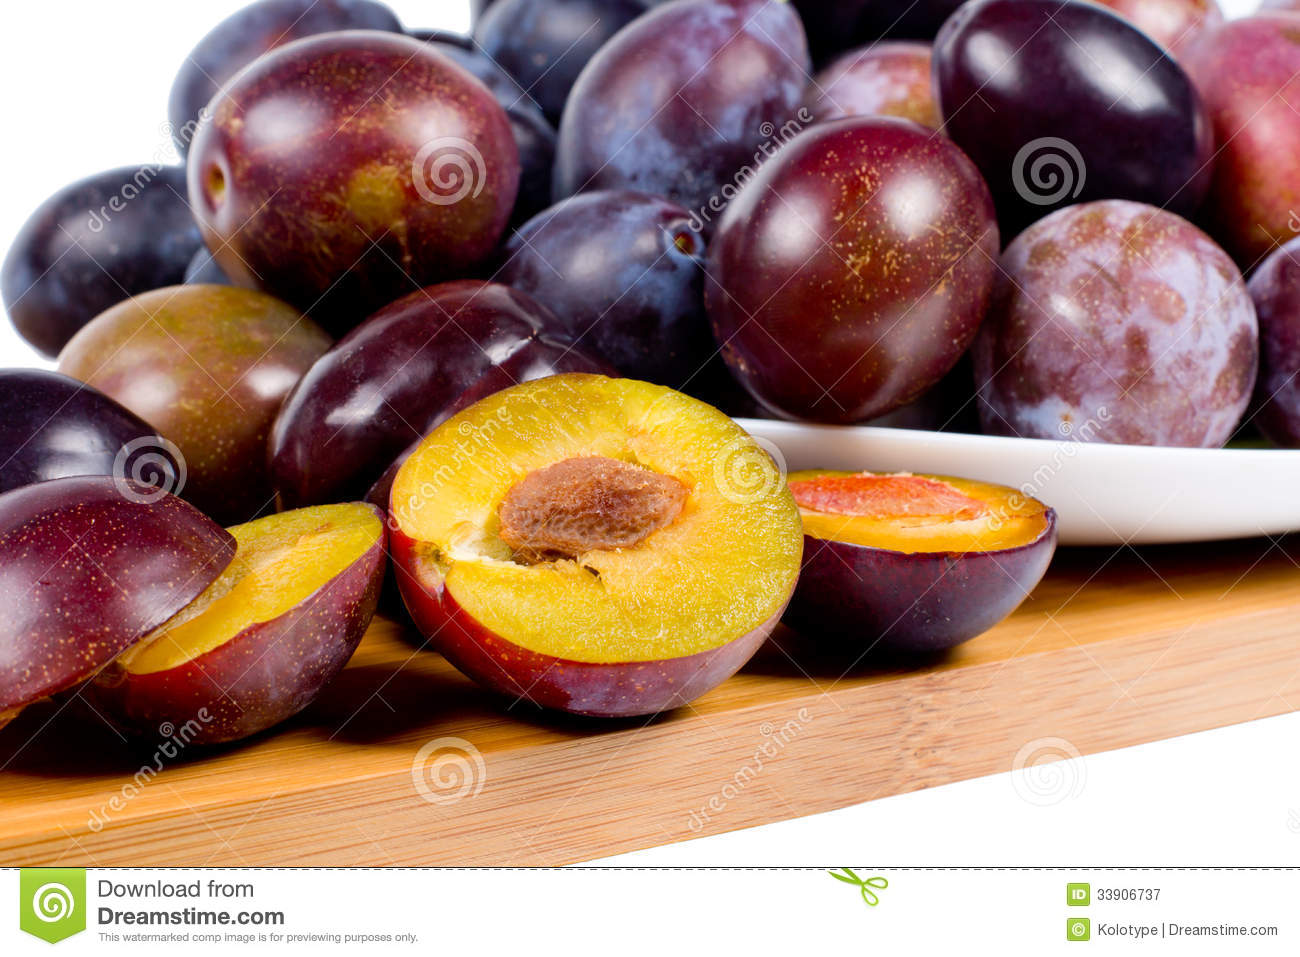 Whole and halved fresh red plums